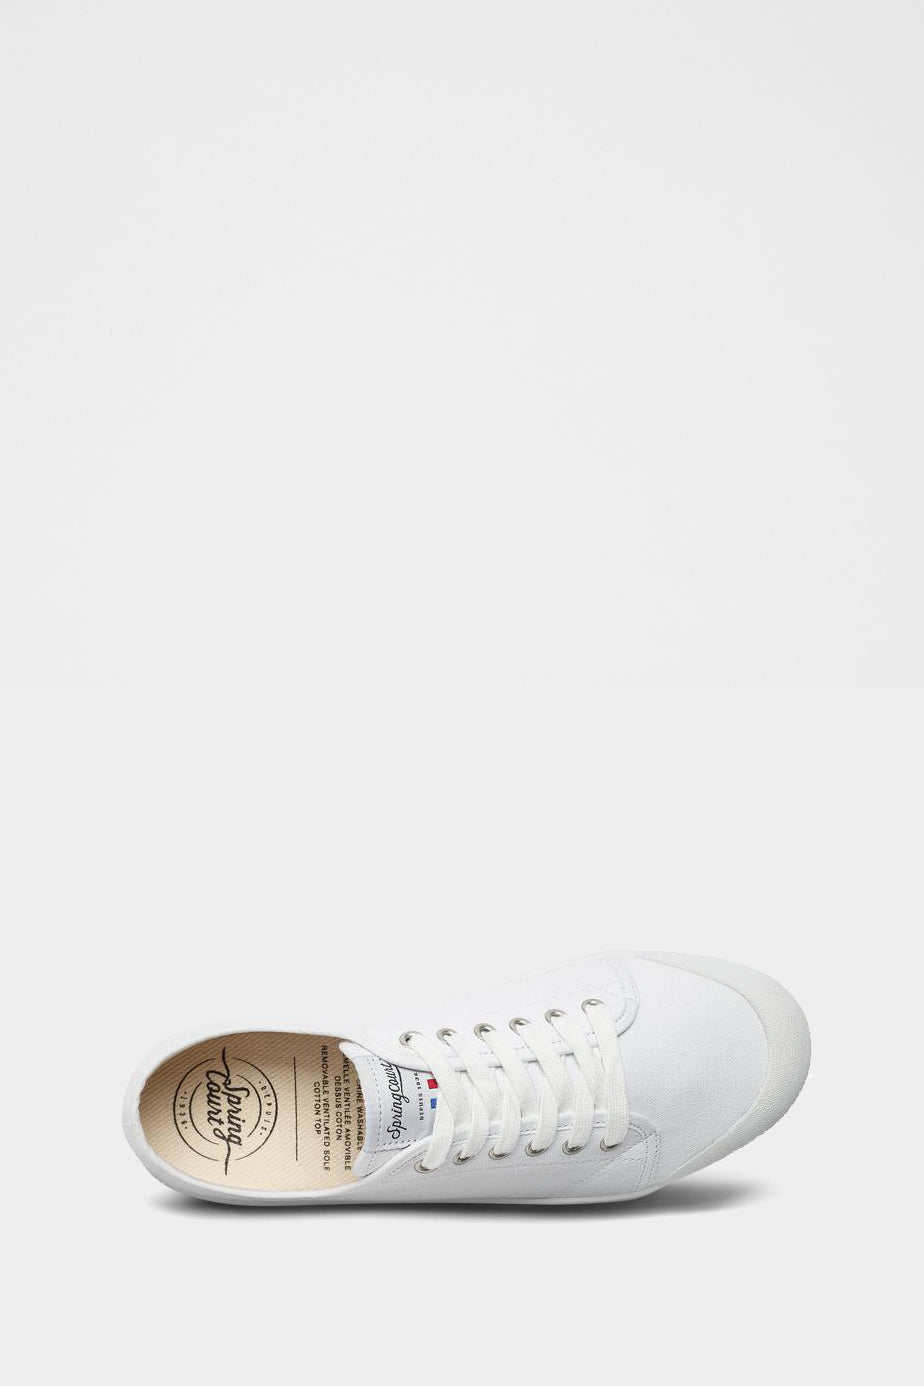 Buy G2S 1001 Classic Canvas Sneakers from SPRINGCOURT at PAYA boutique